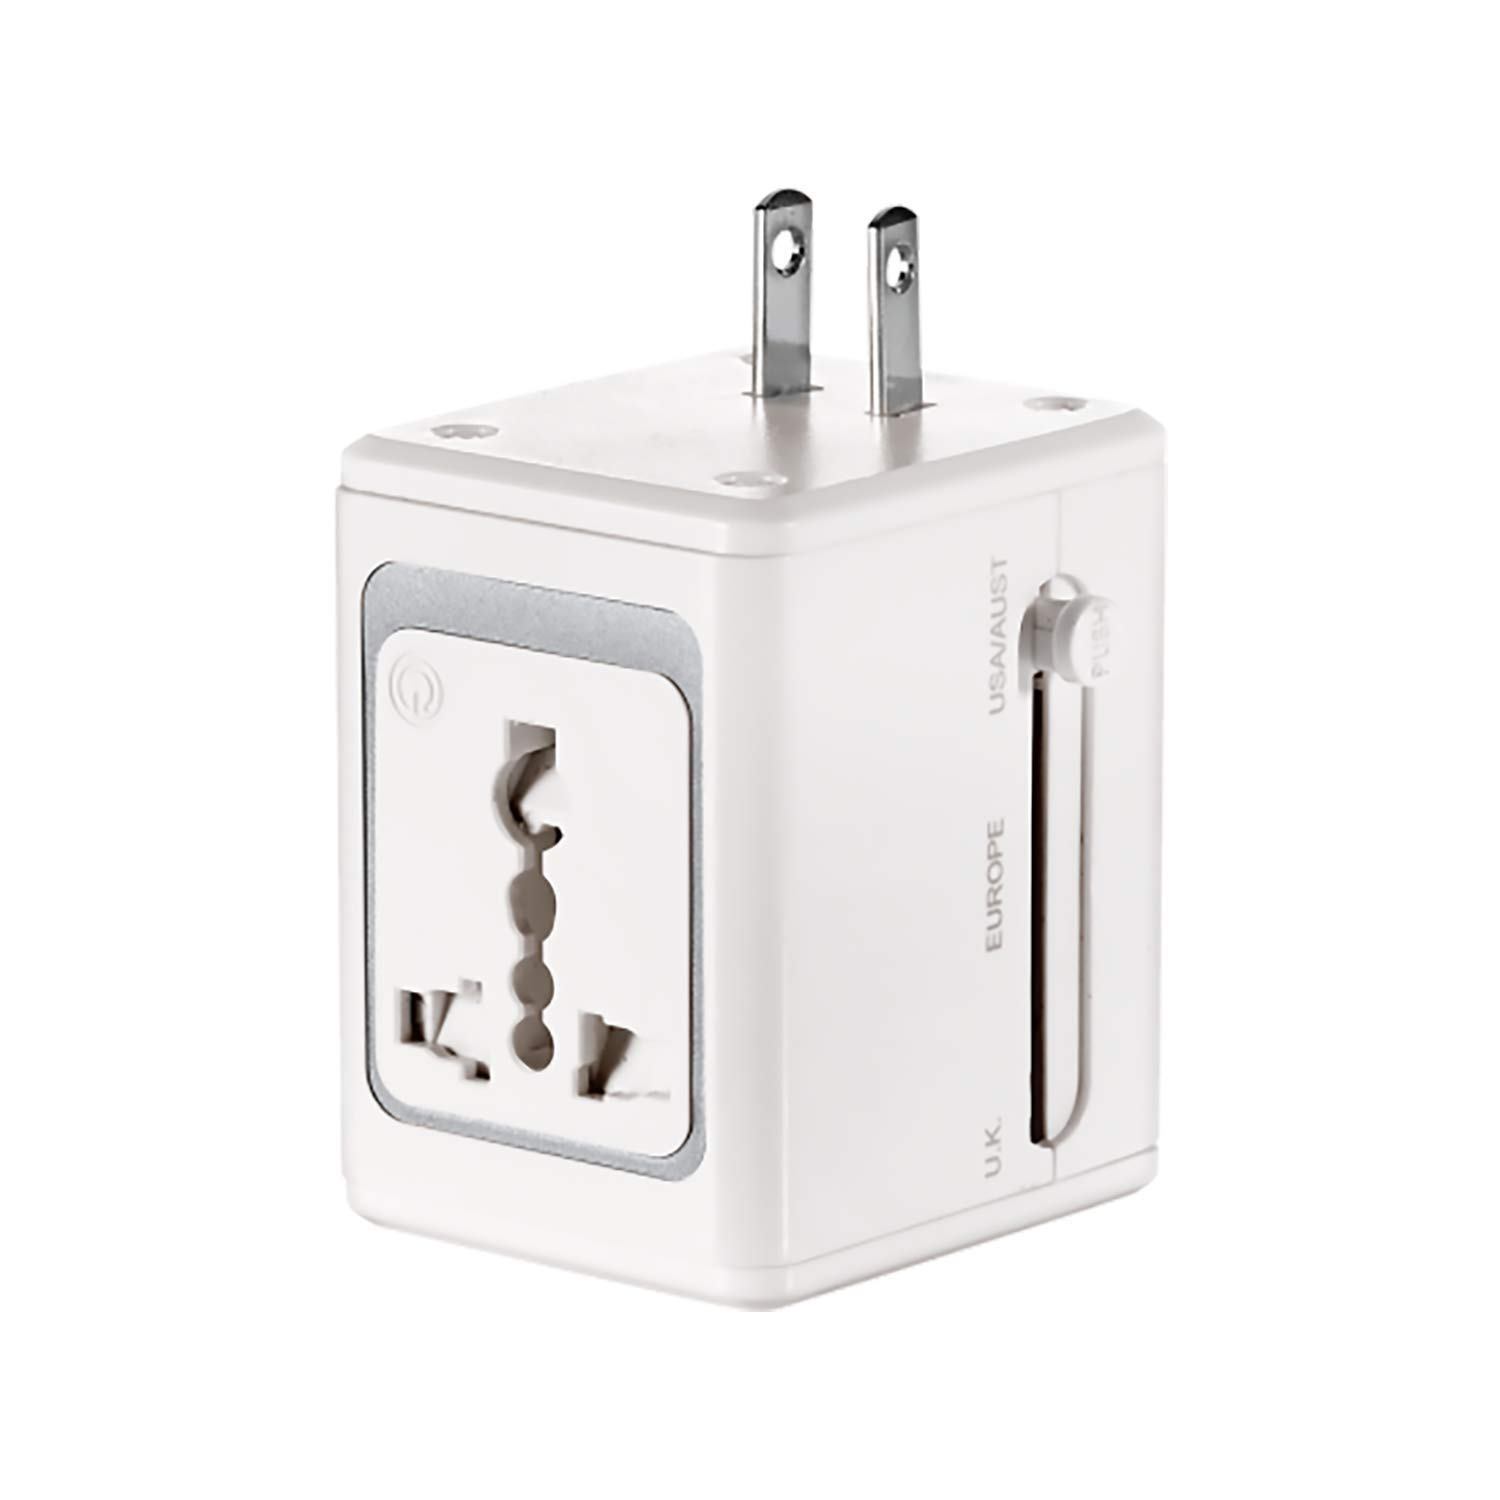 Lectronic Smart LS1ADR All-In-One Adapter with Built-In USB Port - Retail Packaging - White by Lectronic Smart